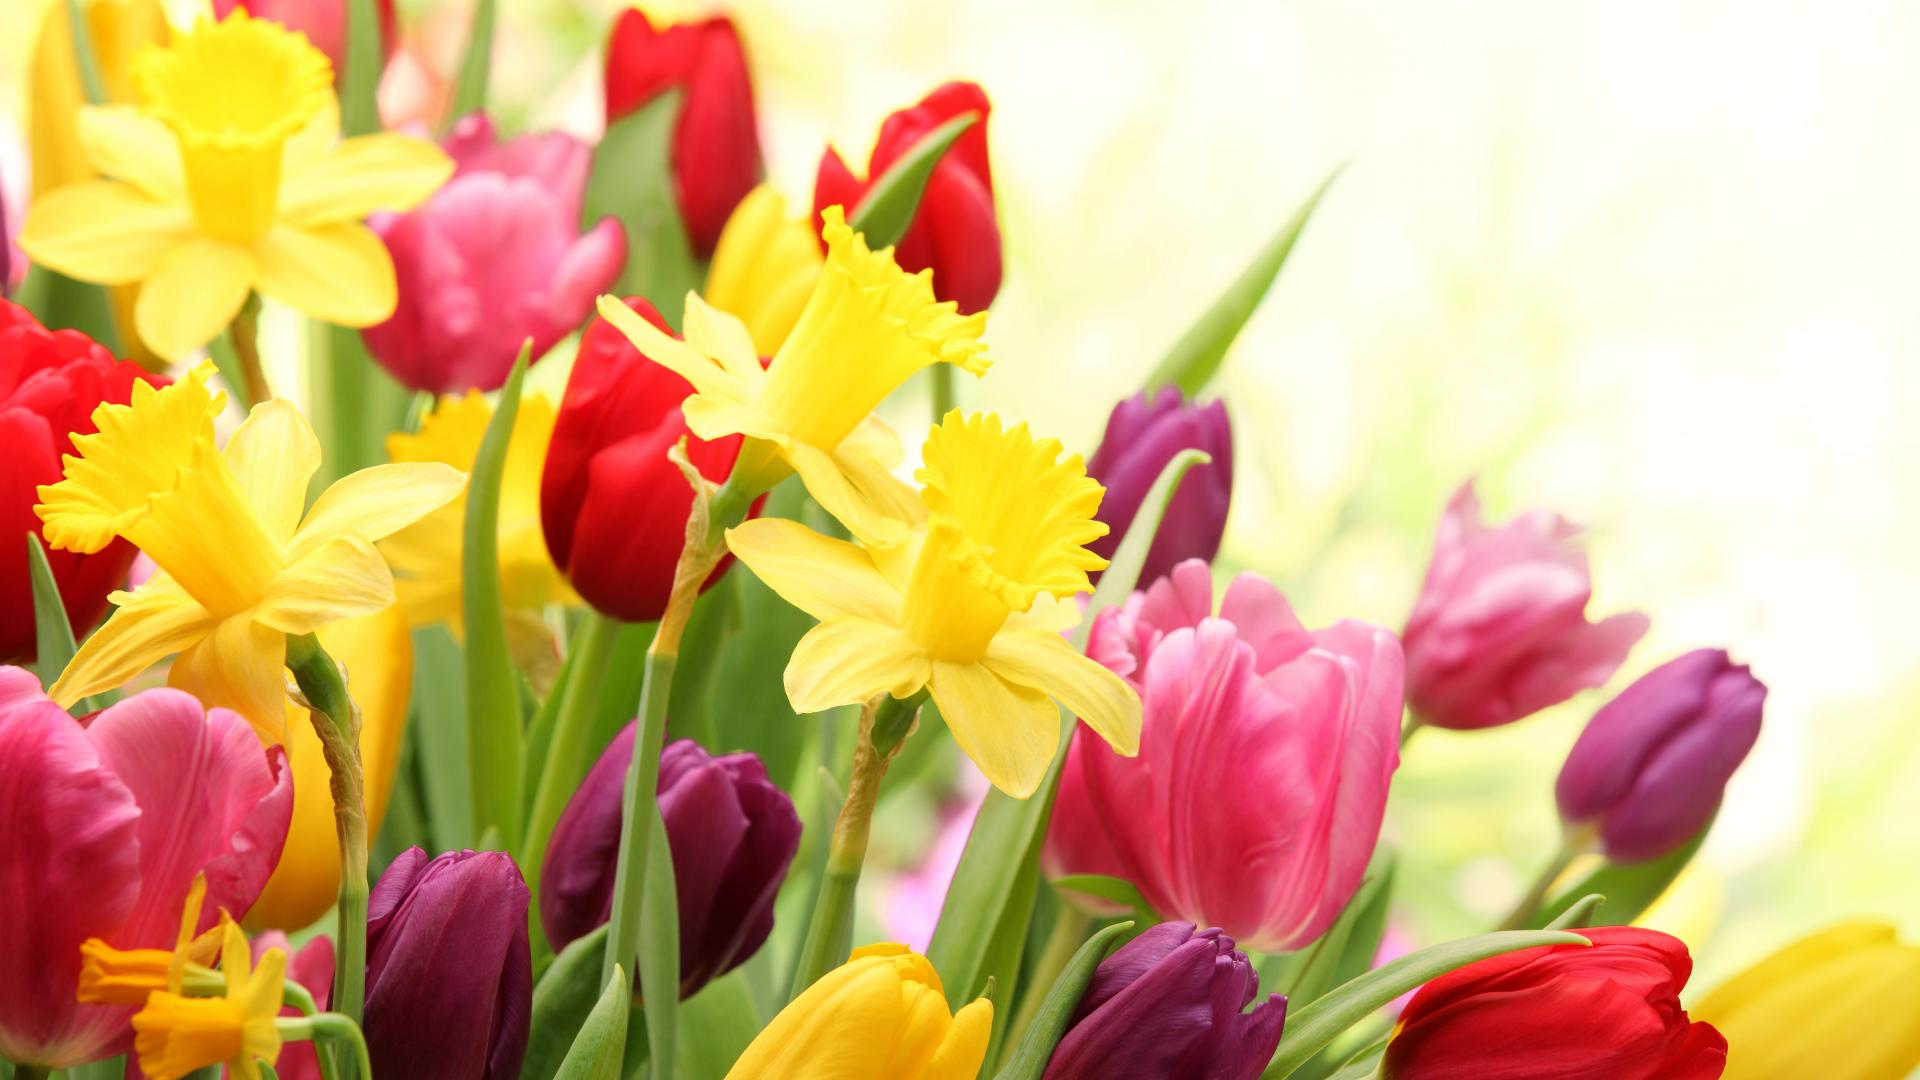 Spring Flowers HD Wallpapers 1920x1080